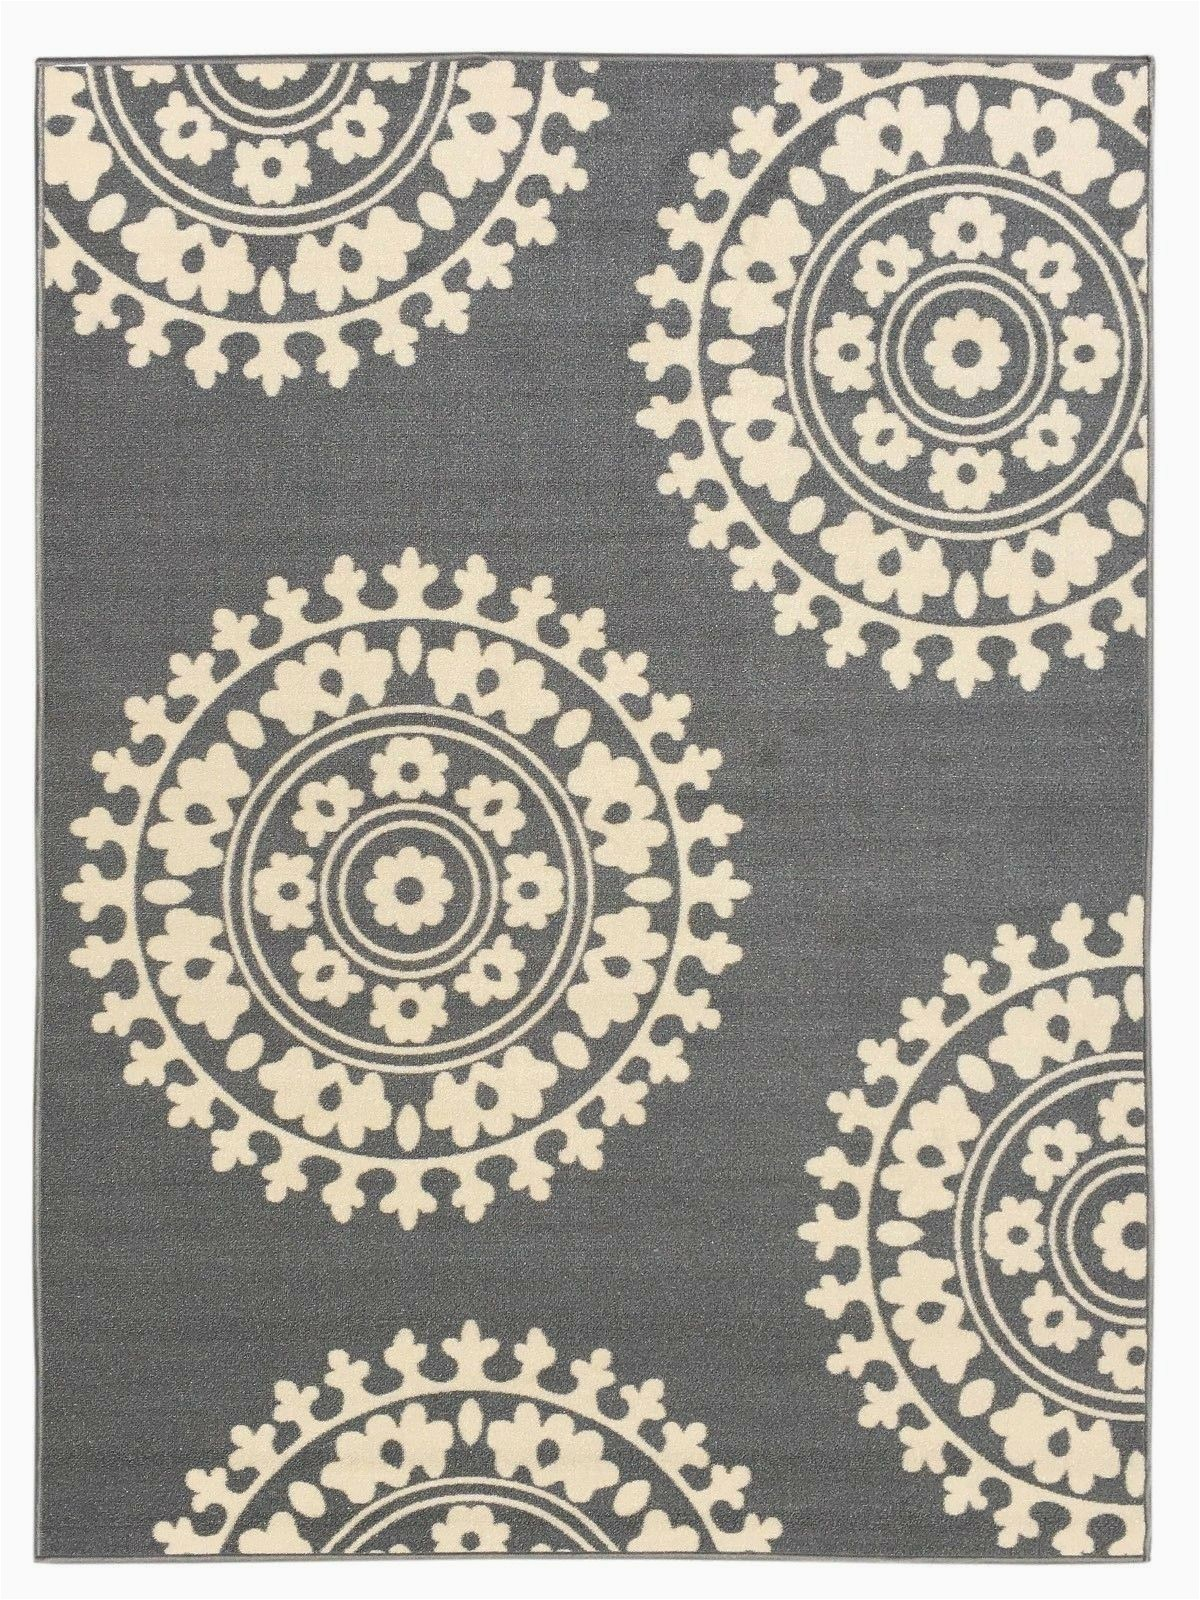 Rubber Backed 3x5 area Rugs Rubber Backed Non Skid Non Slip Gray Ivory Color Medallion Design area Rug